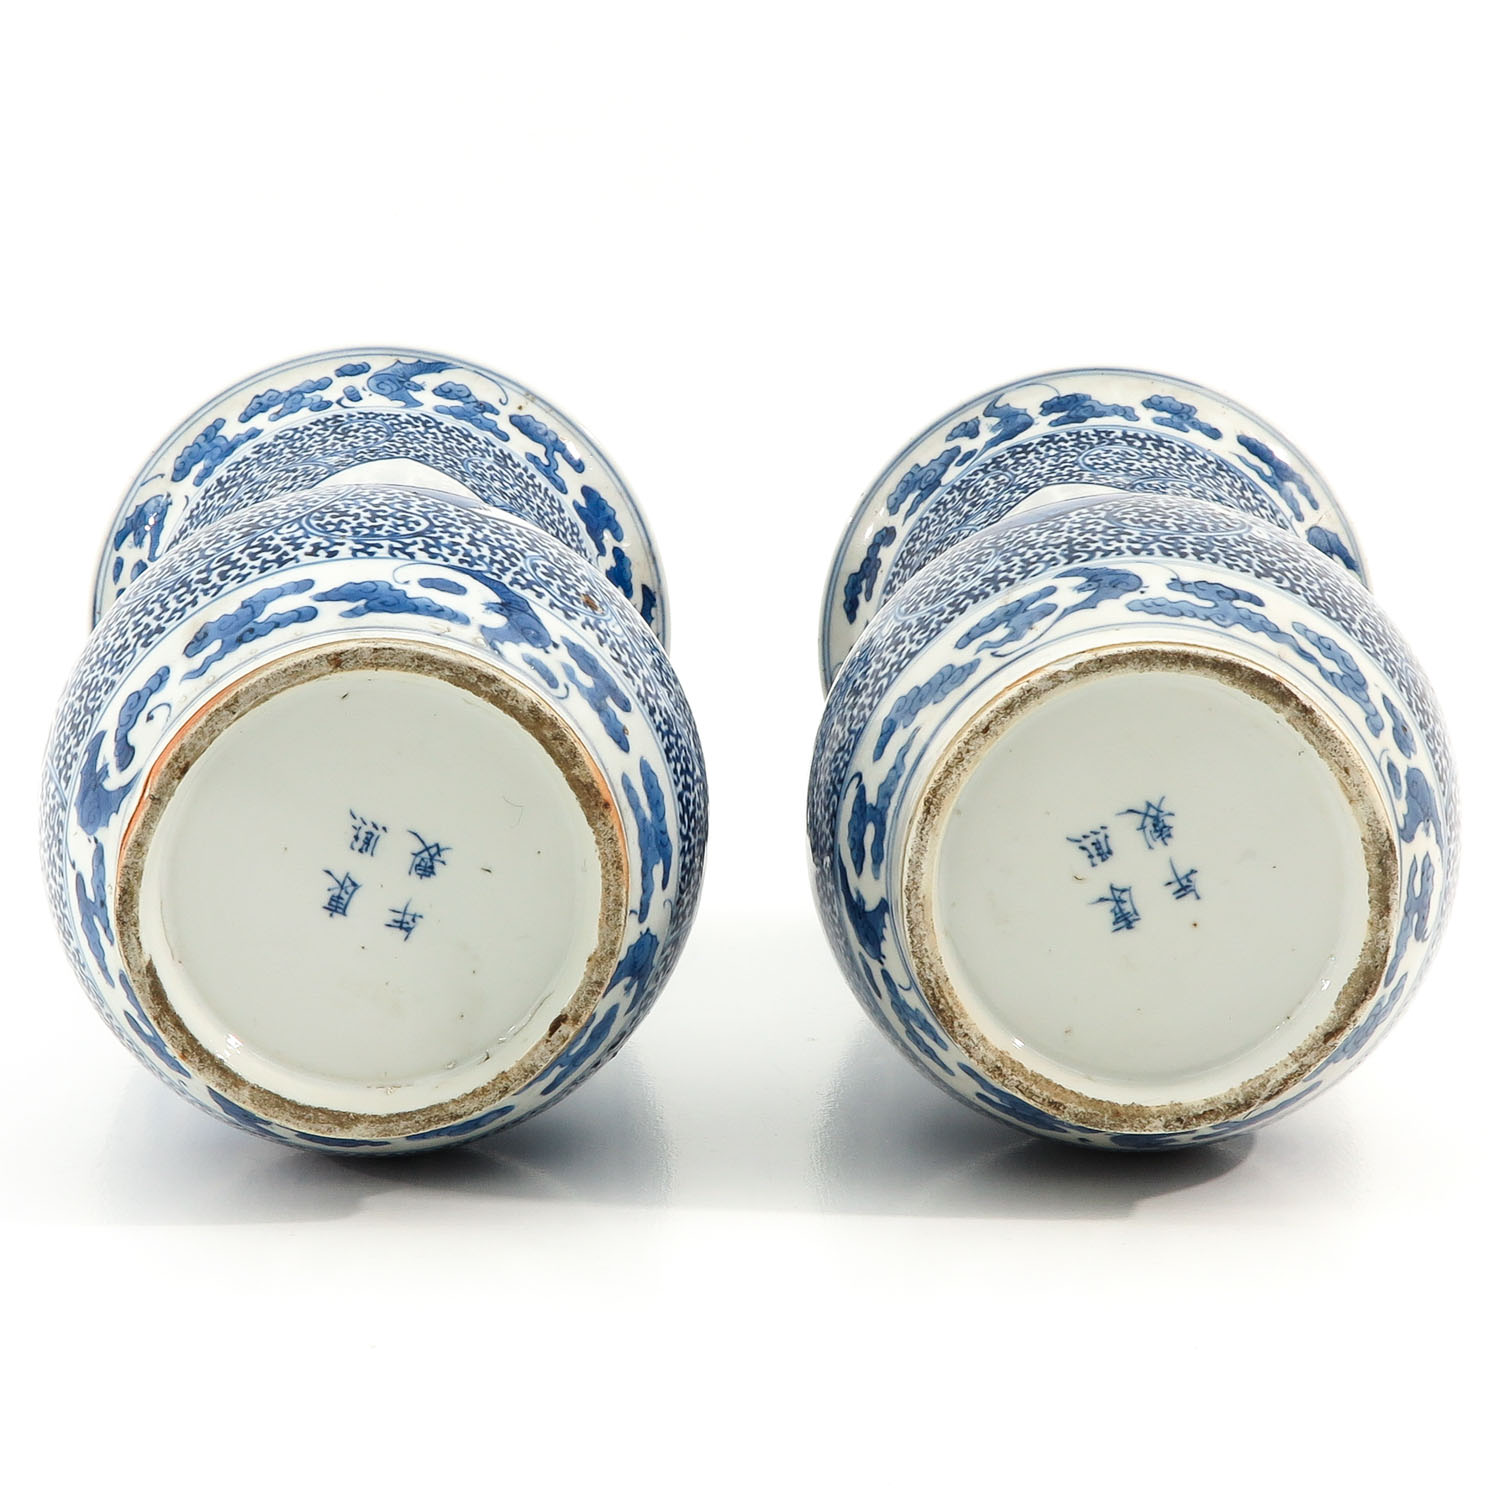 A Pair of Blue and White Vases - Image 6 of 10